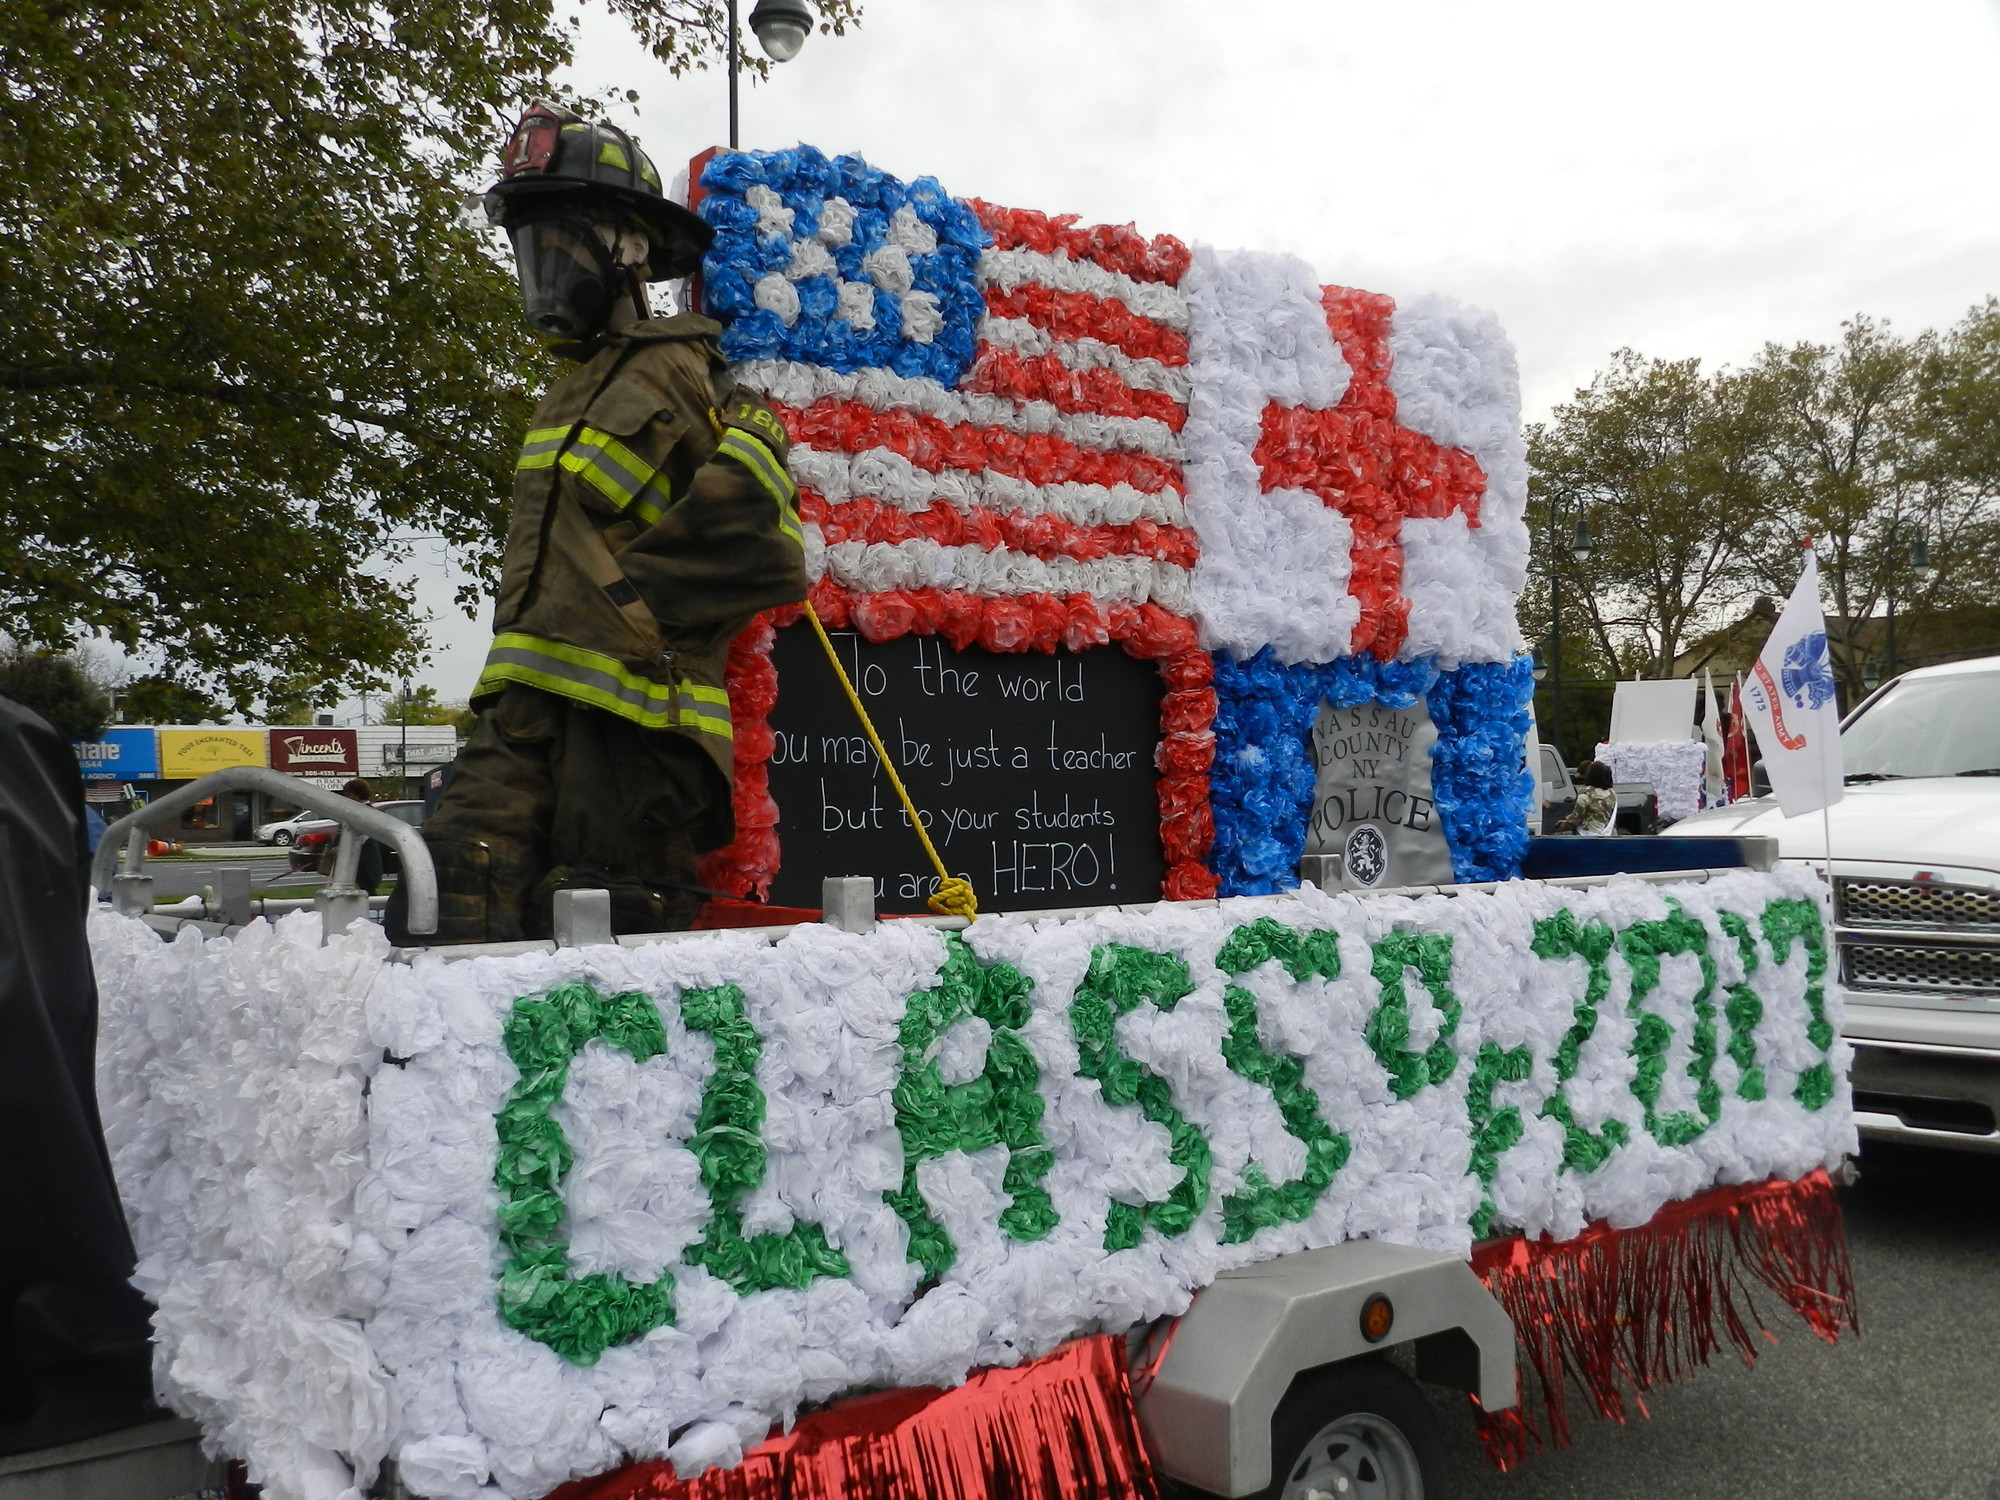 SEAFORD HOMECOMING: The Seaford High School freshman class wins the float contest by incorporating the Homecoming theme